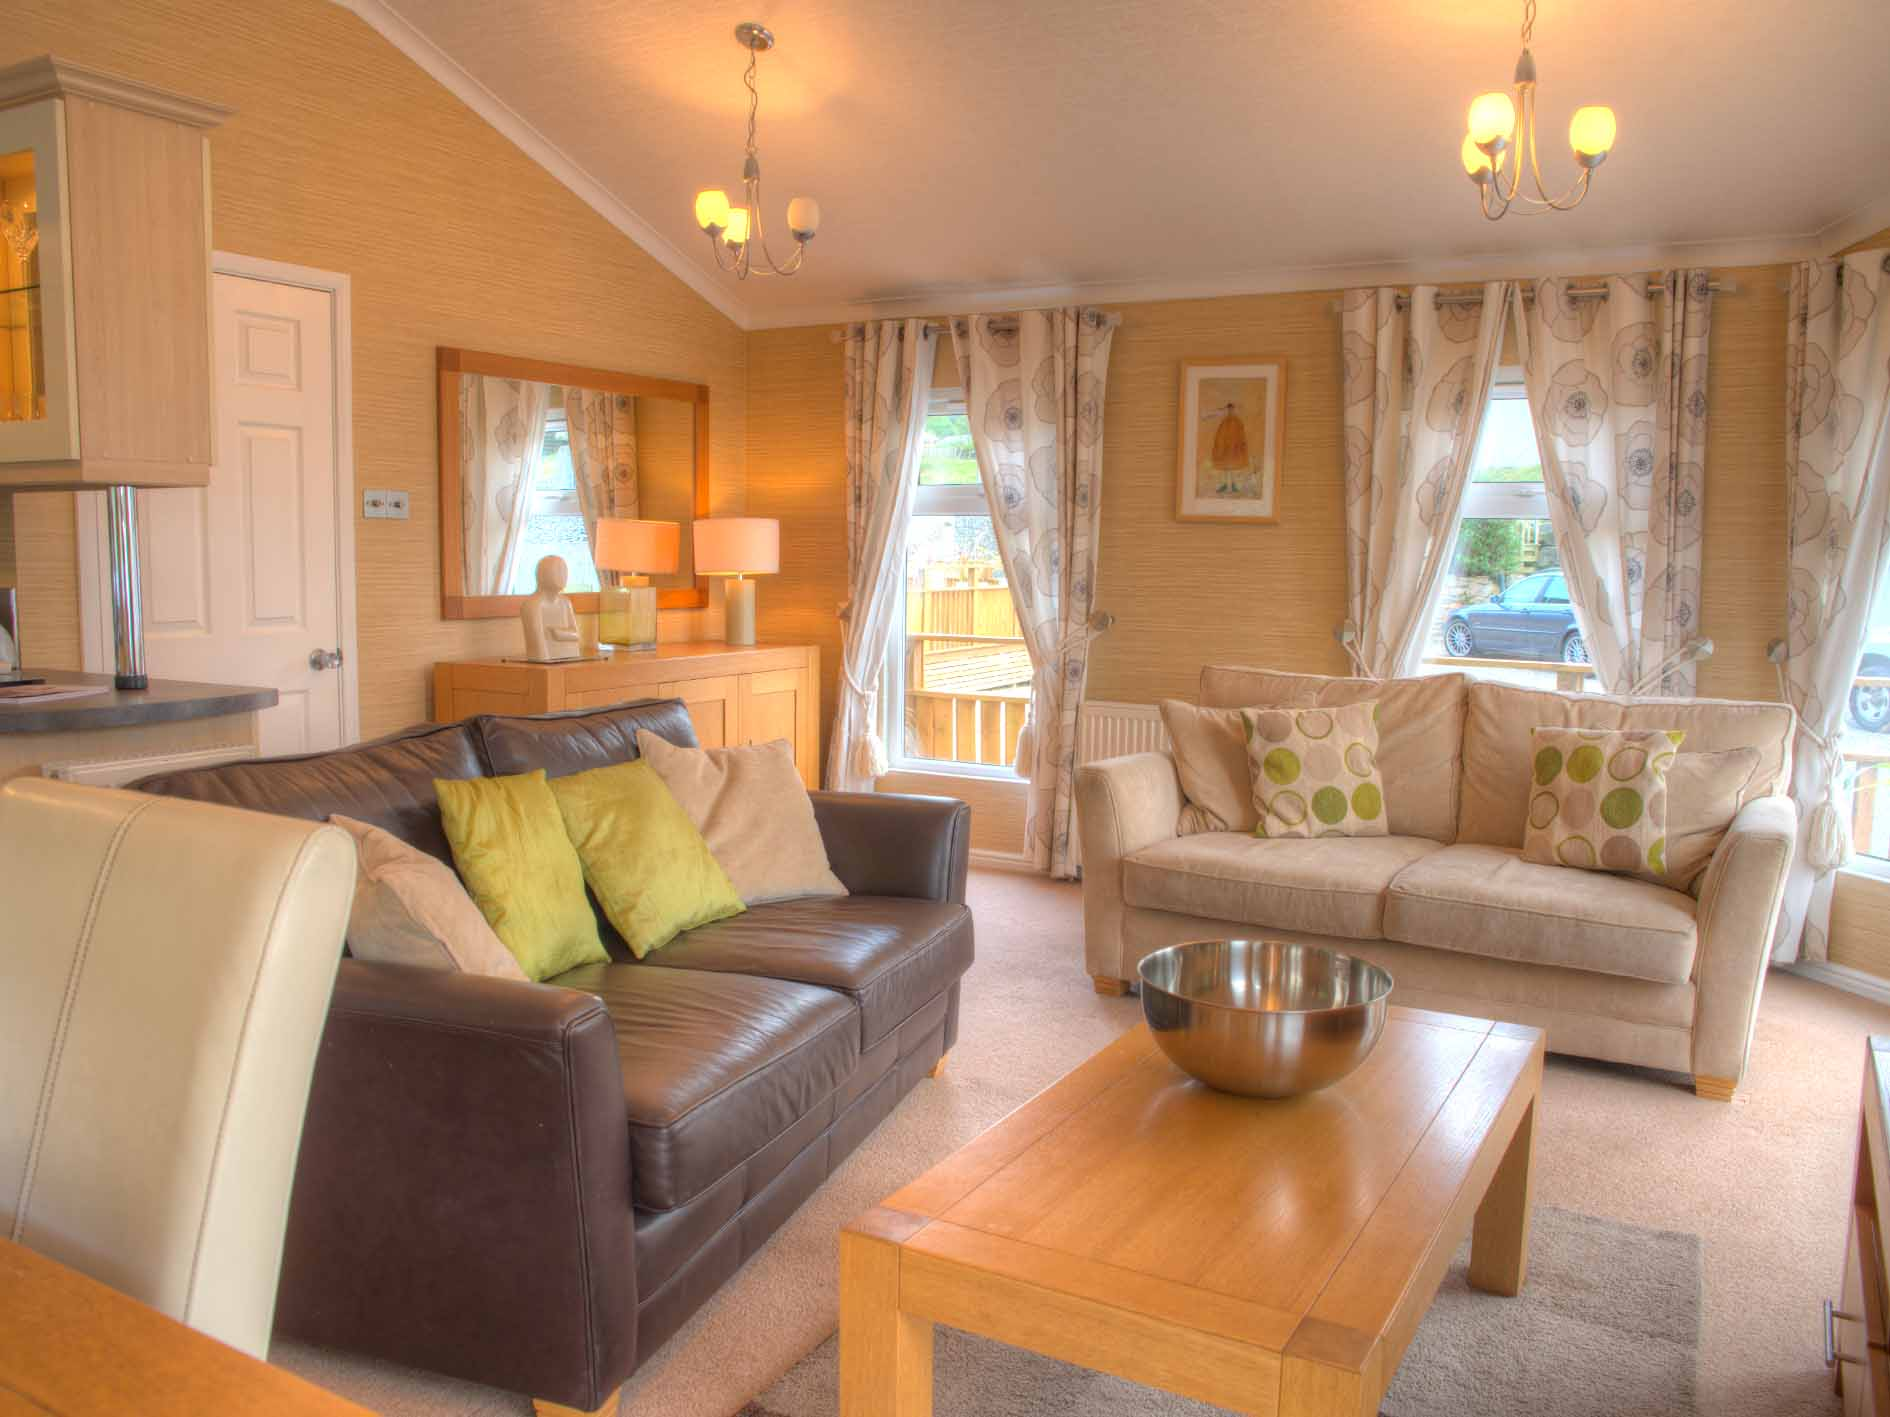 log cabin wales, lounge, holiday parks with lodges